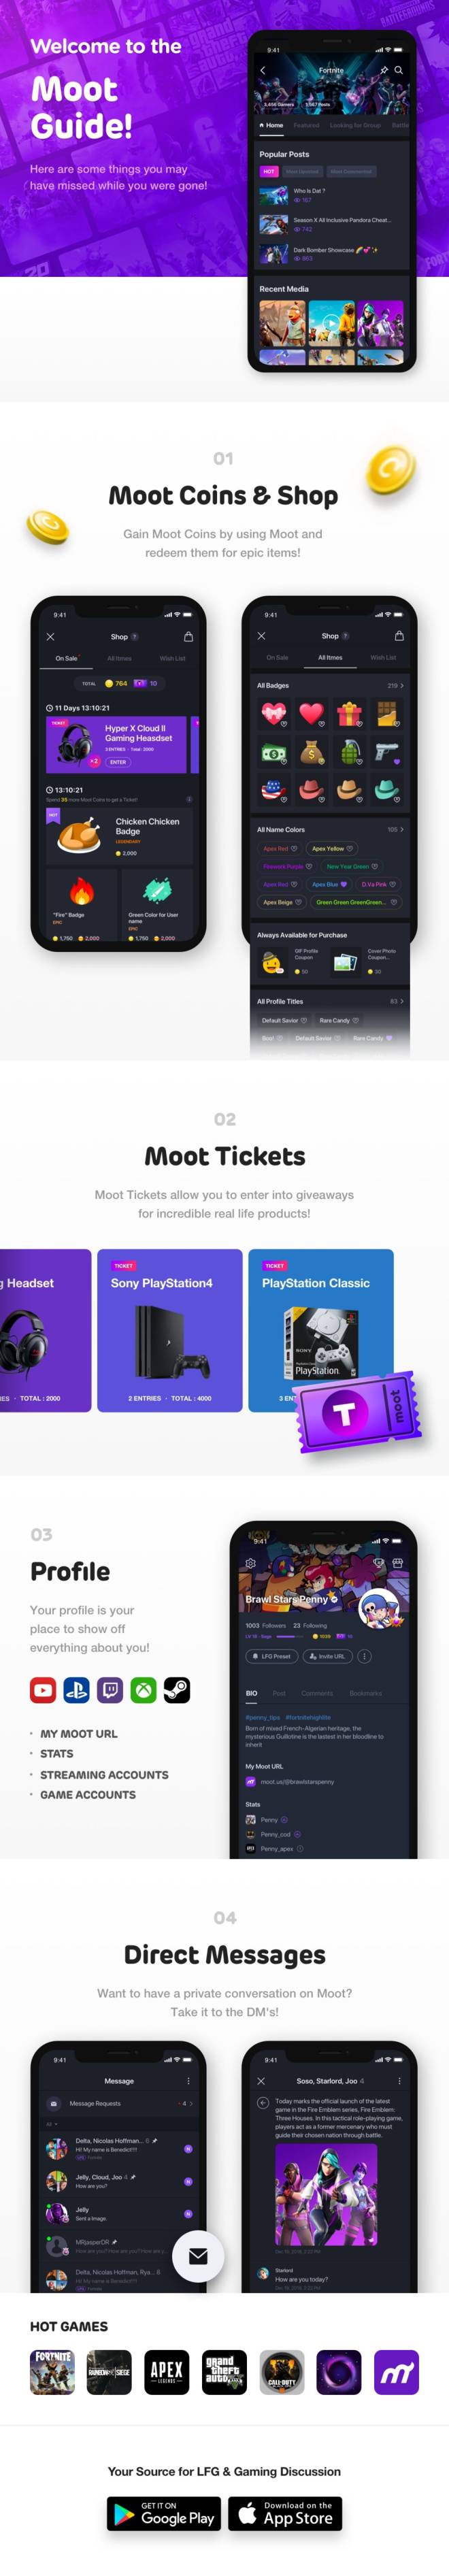 Moot: FAQ - Welcome to the Moot Guide #2 image 2